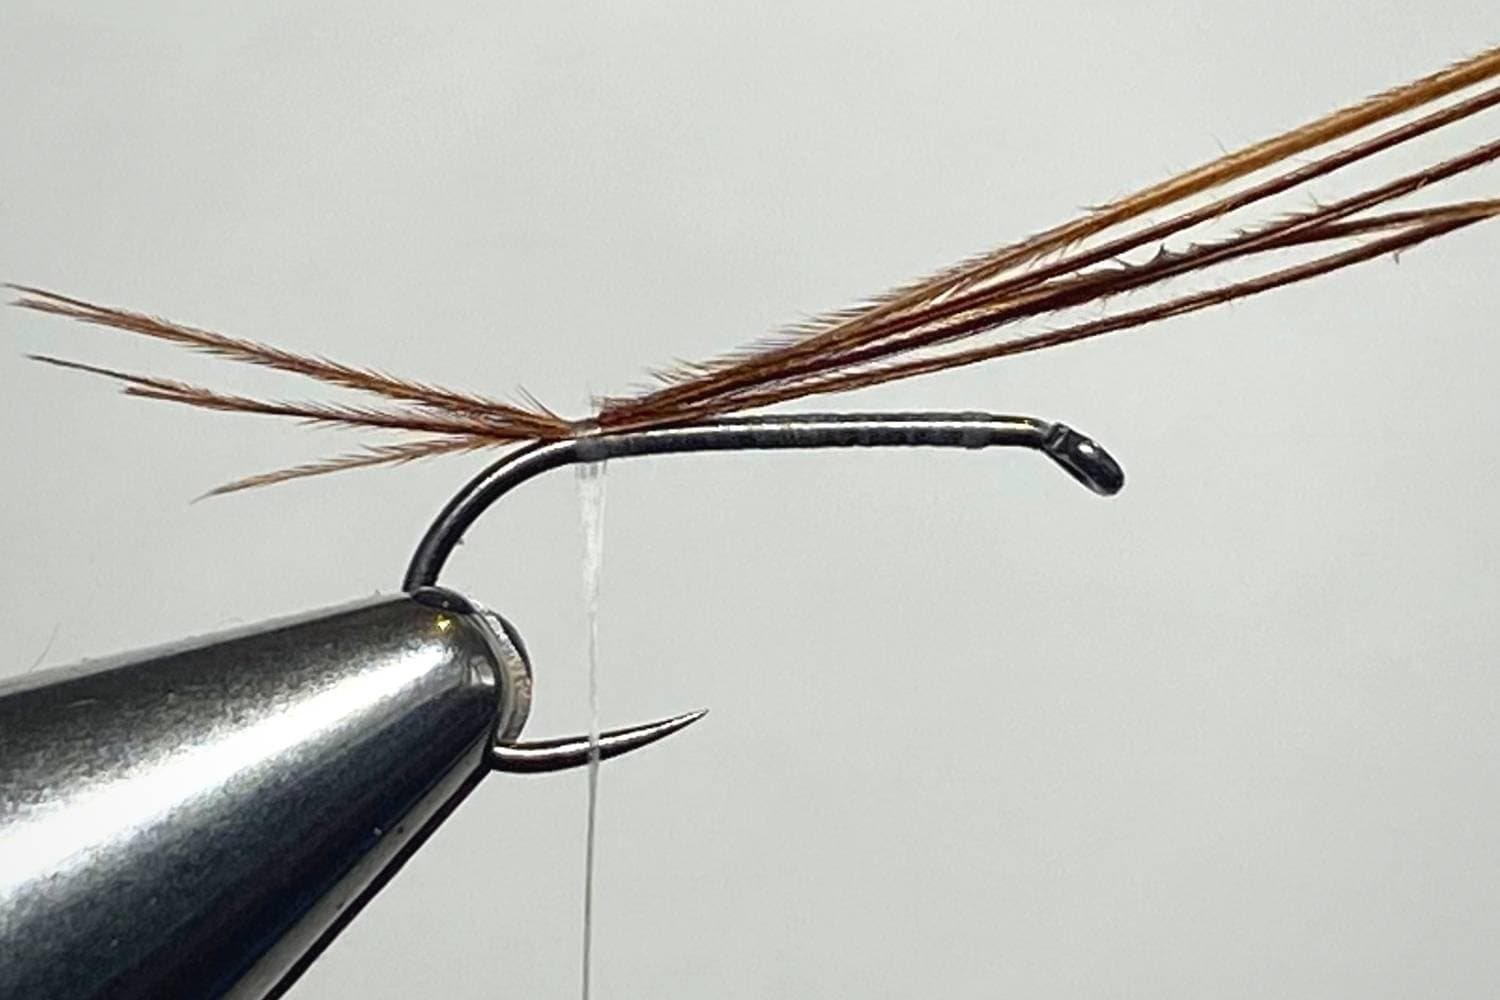 How to Tie a Pheasant Tail Nymph Fly step 3